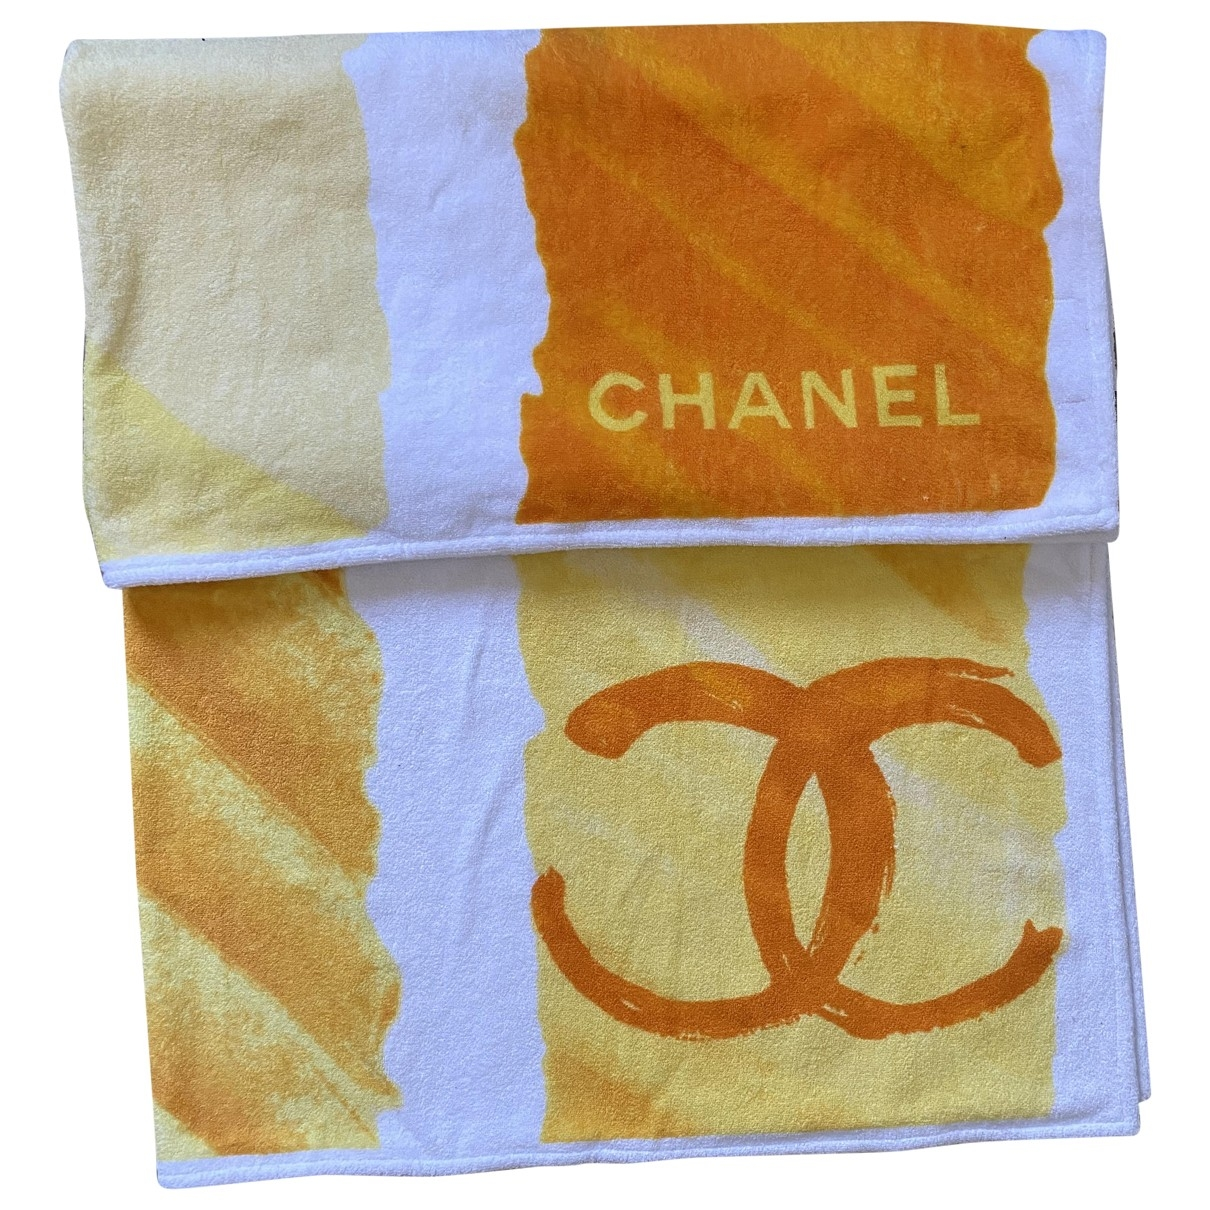 Chanel \N Yellow Sponge Textiles for Life & Living \N